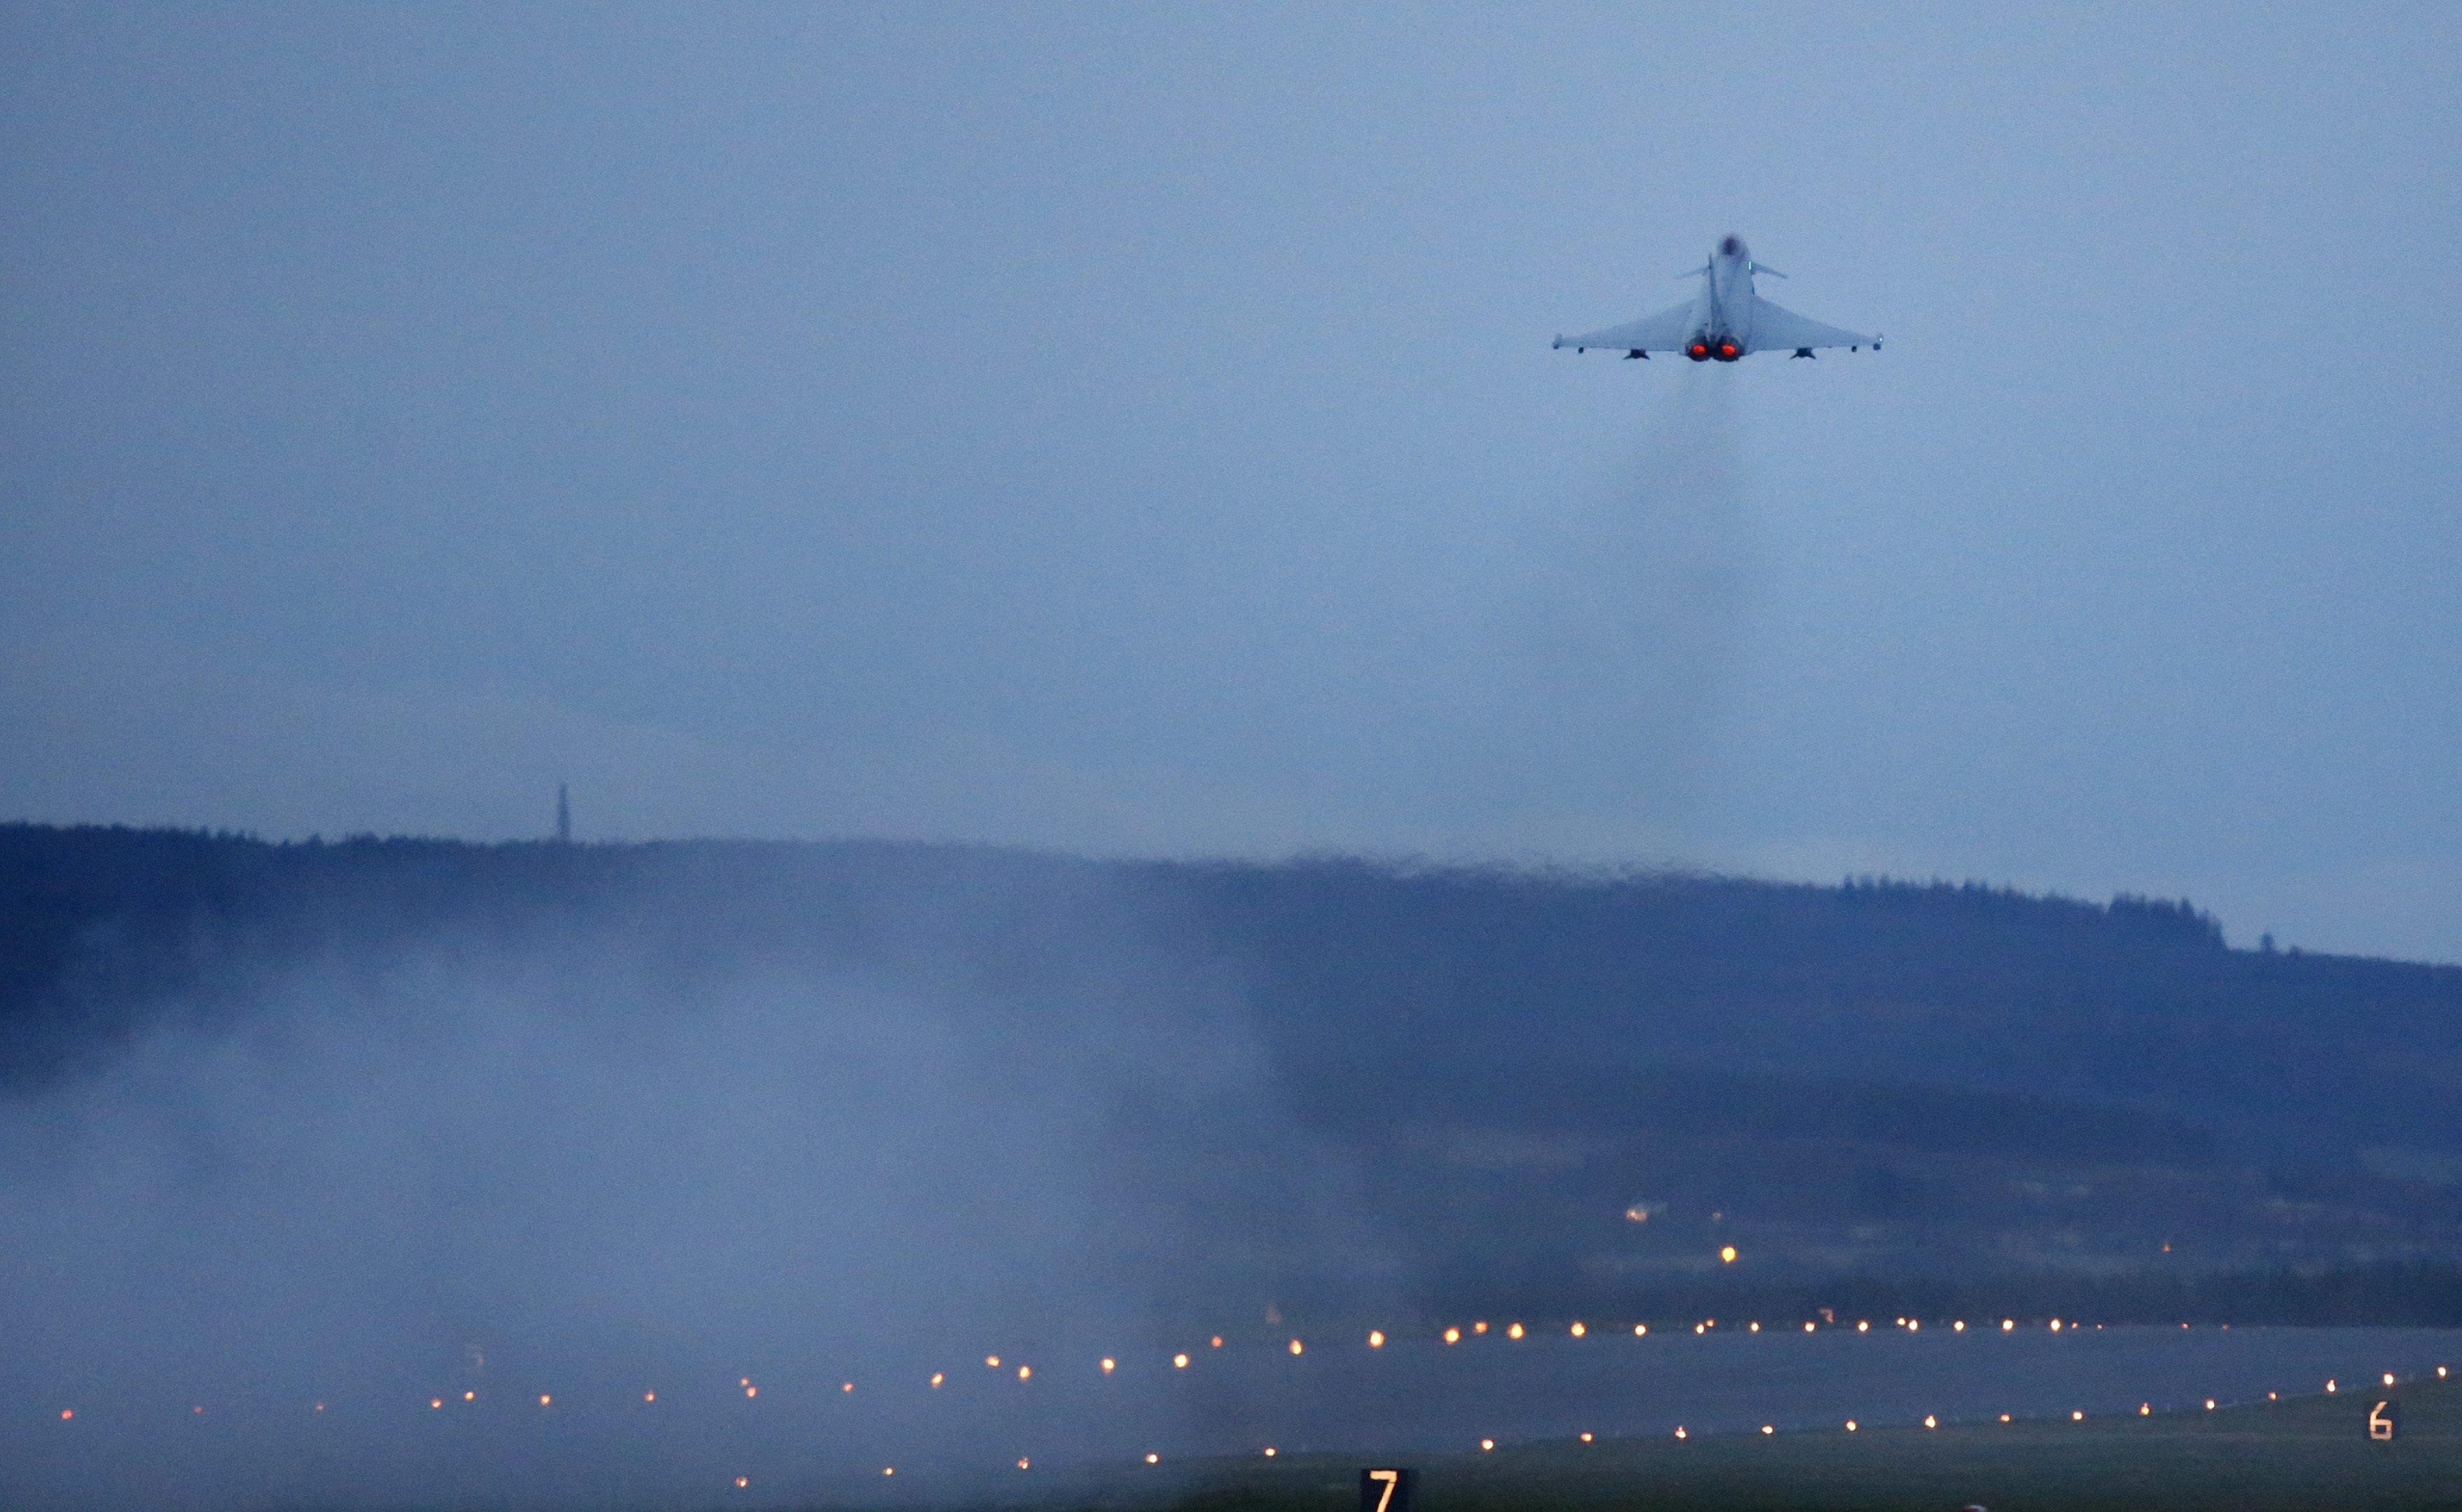 Typhoon jet taking off from Lossiemouth (Danny Lawson/PA Wire)